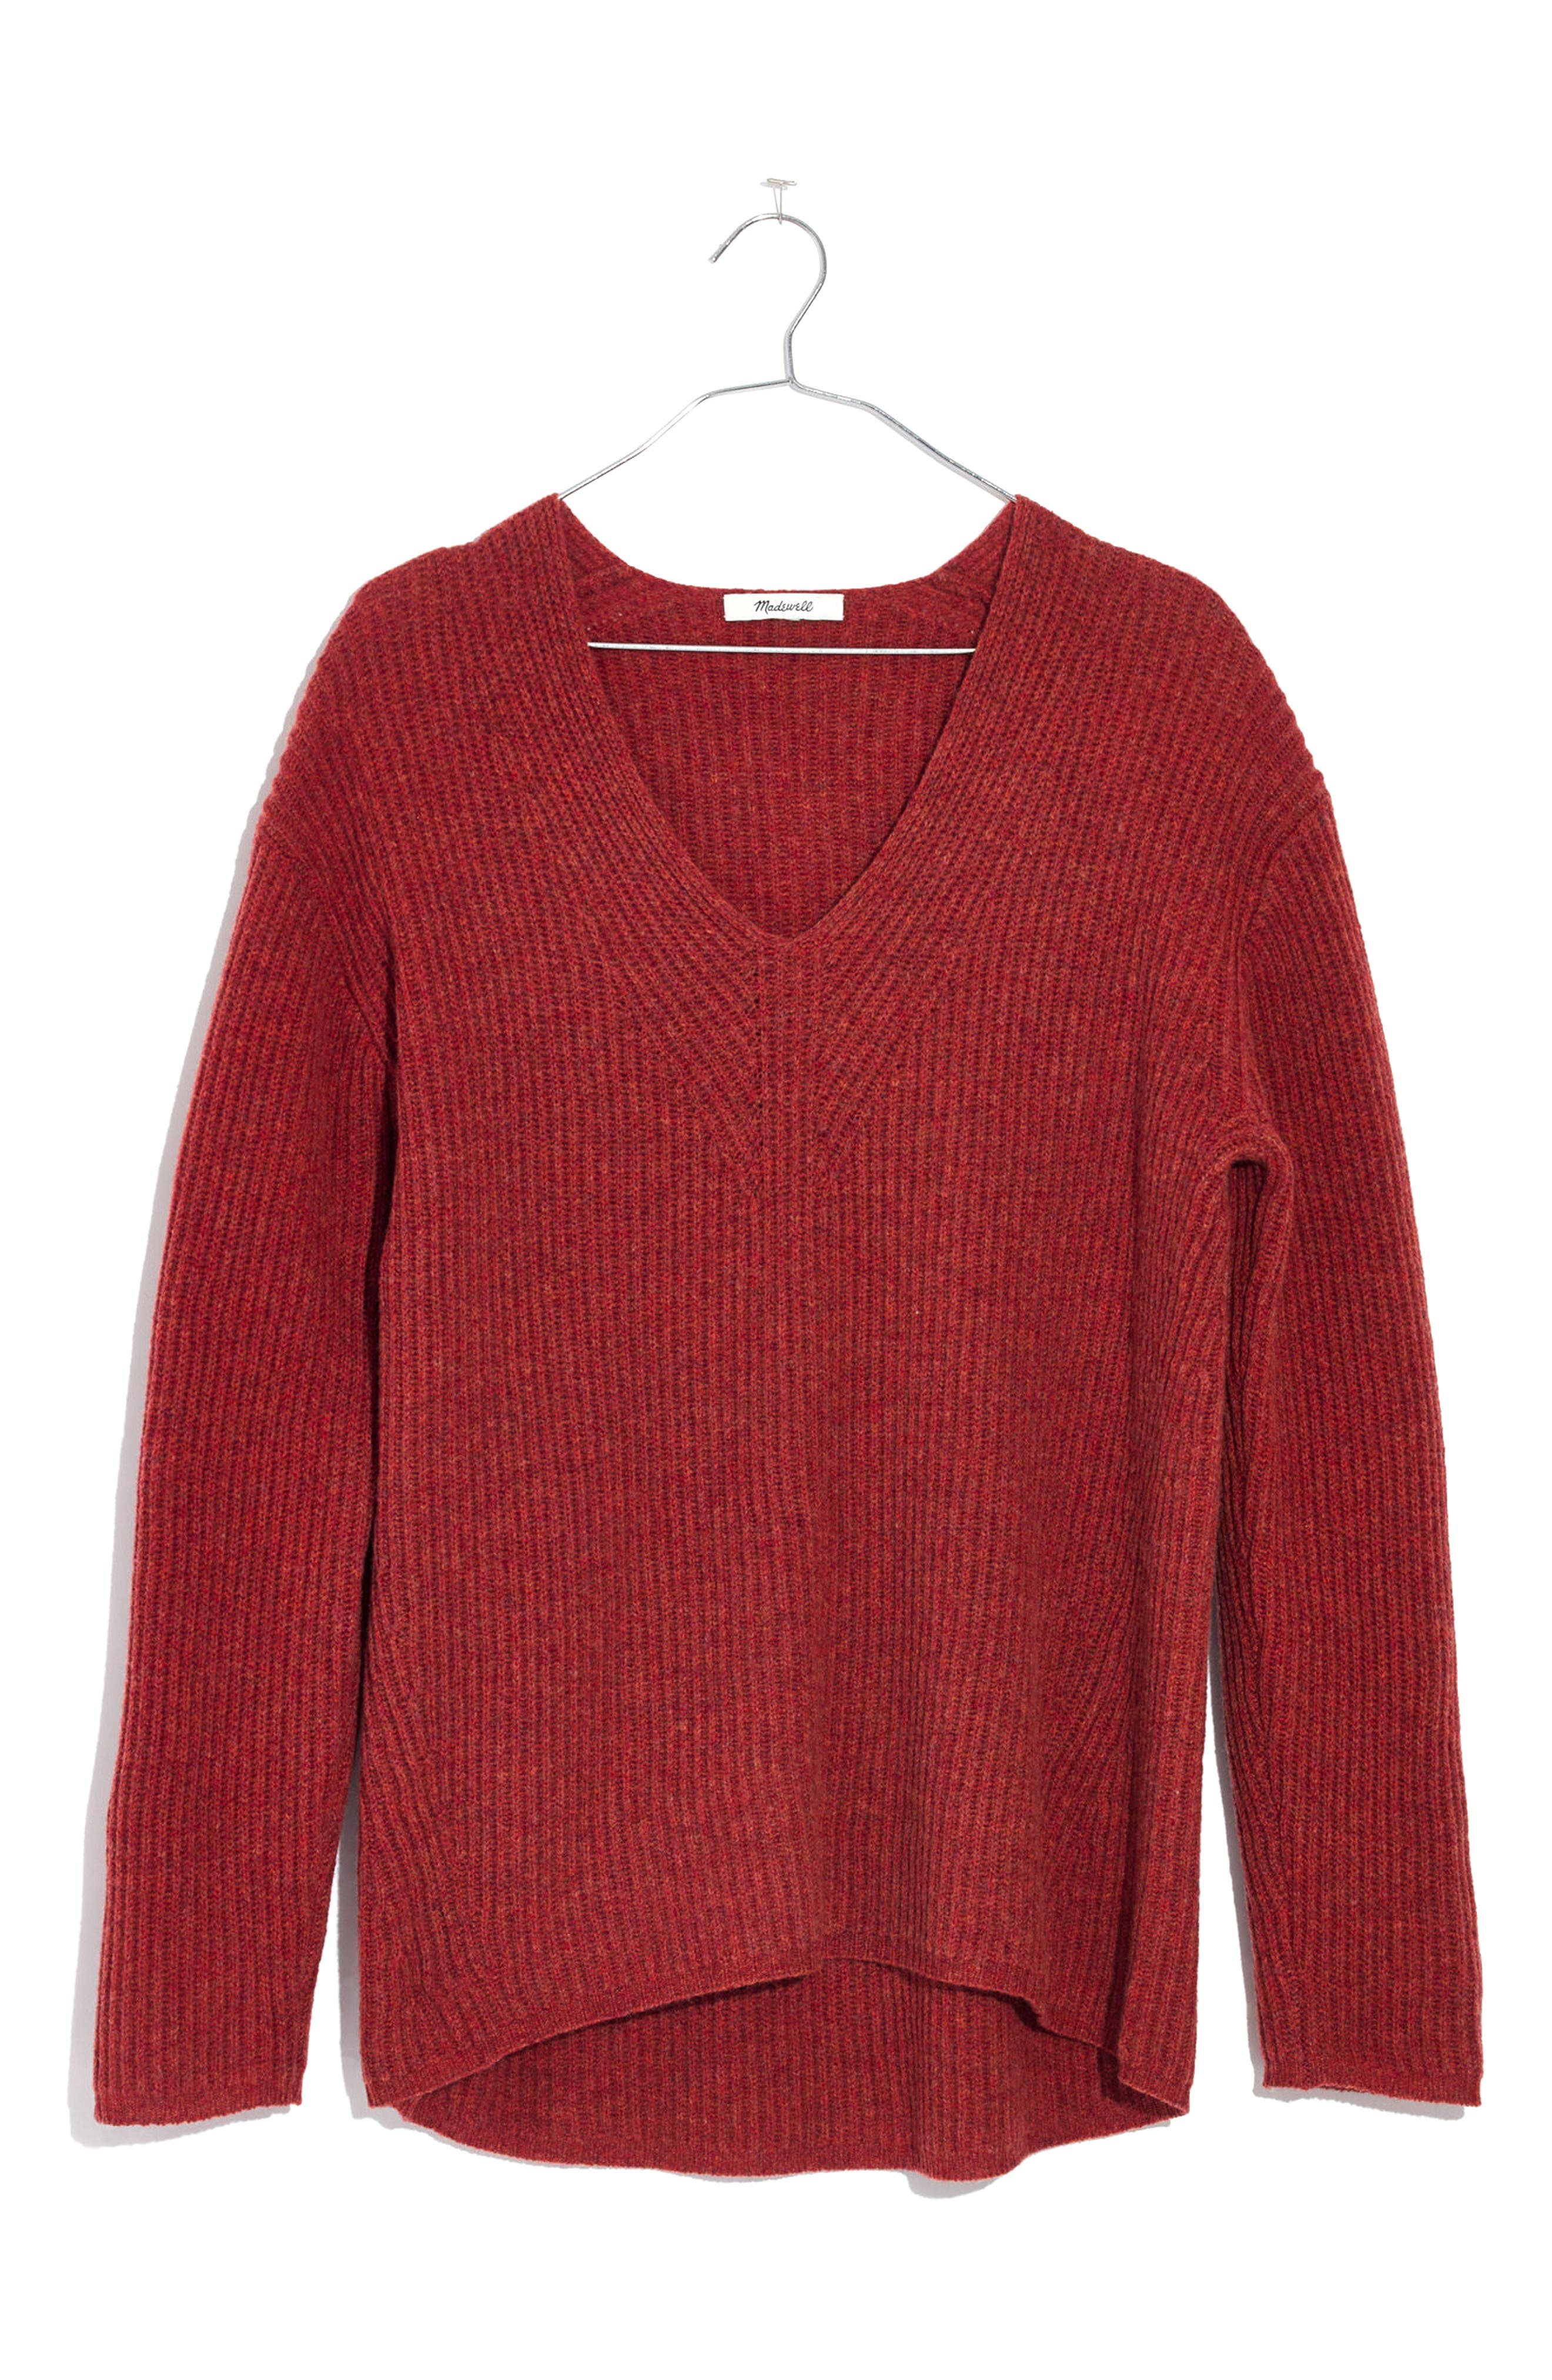 Woodside Pullover Sweater,                             Alternate thumbnail 24, color,